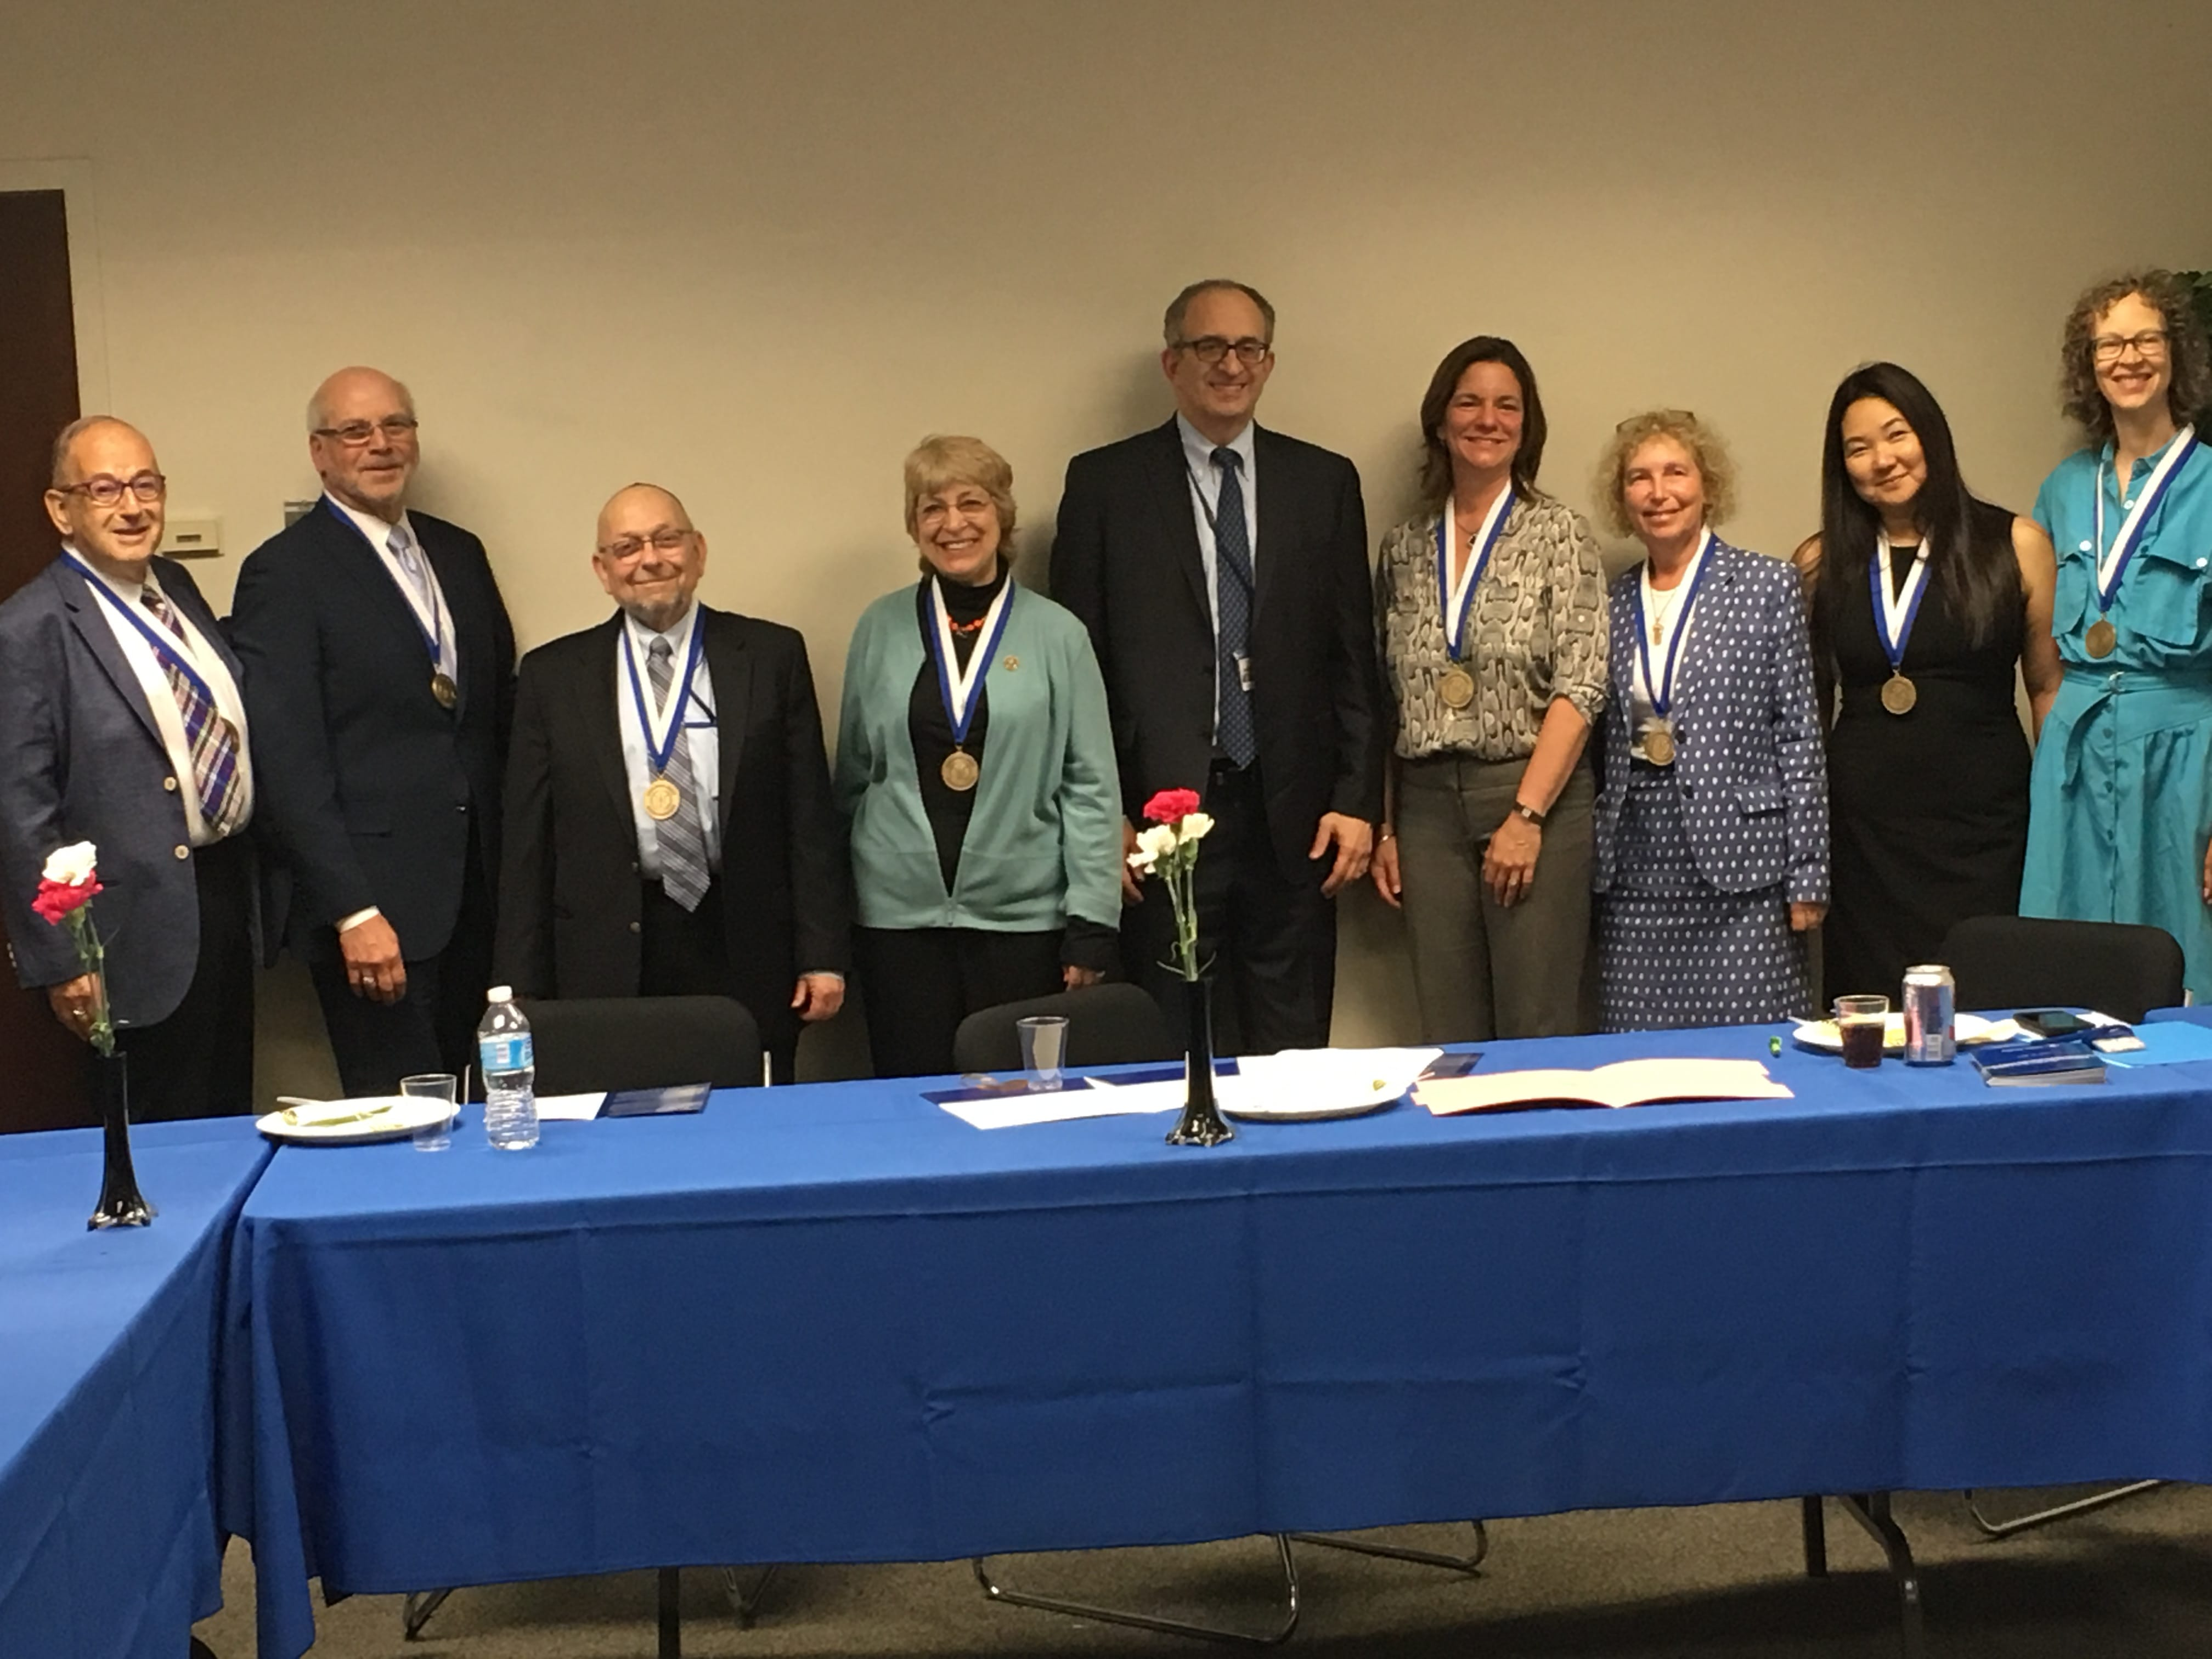 The recipients of the inaugural presidential awards for faculty excellence, with Dr. Kadish, President of Touro College.